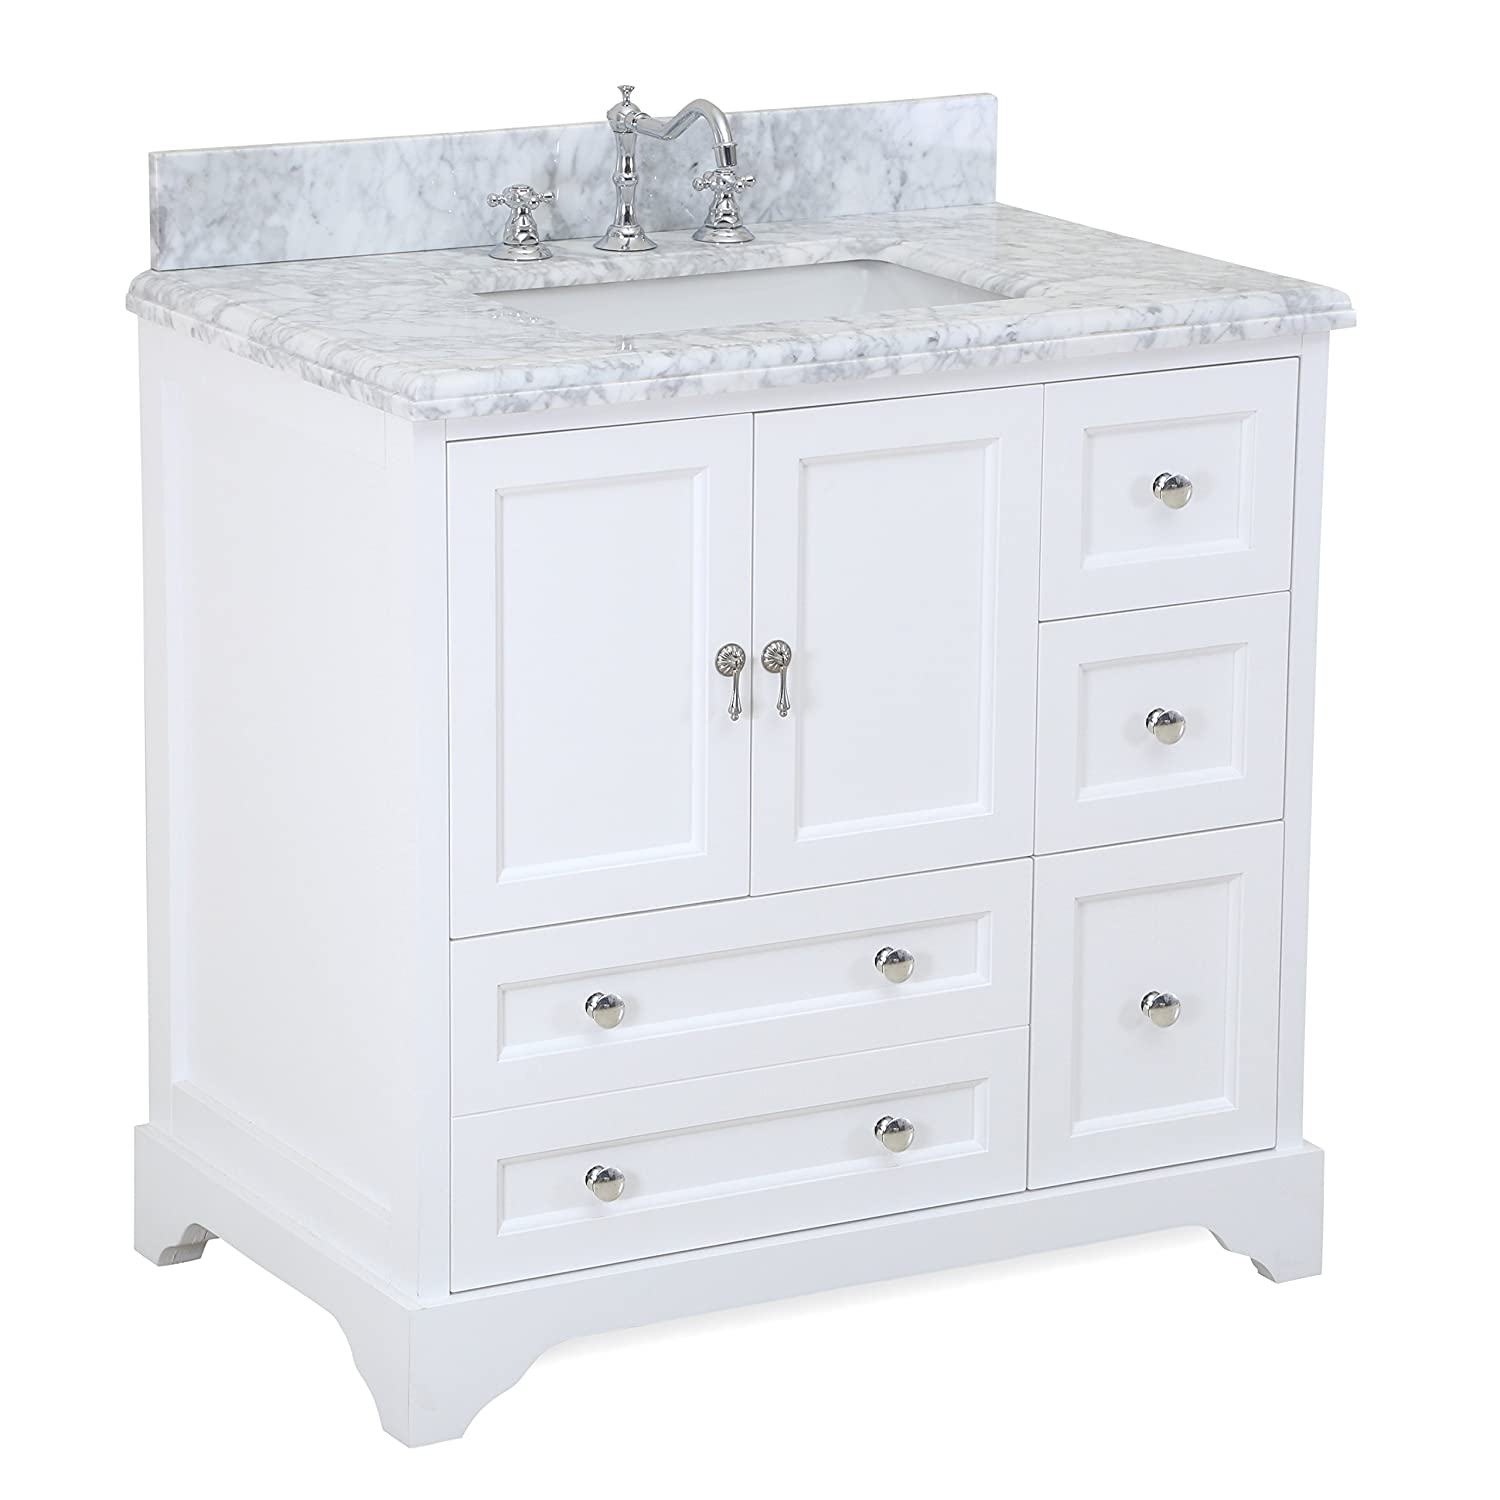 Madison 36 Inch Bathroom Vanity (Carrara/White): Includes Italian Carrara  Marble Top, White Cabinet With Soft Close Drawers U0026 Doors, And Rectangular  Ceramic ...